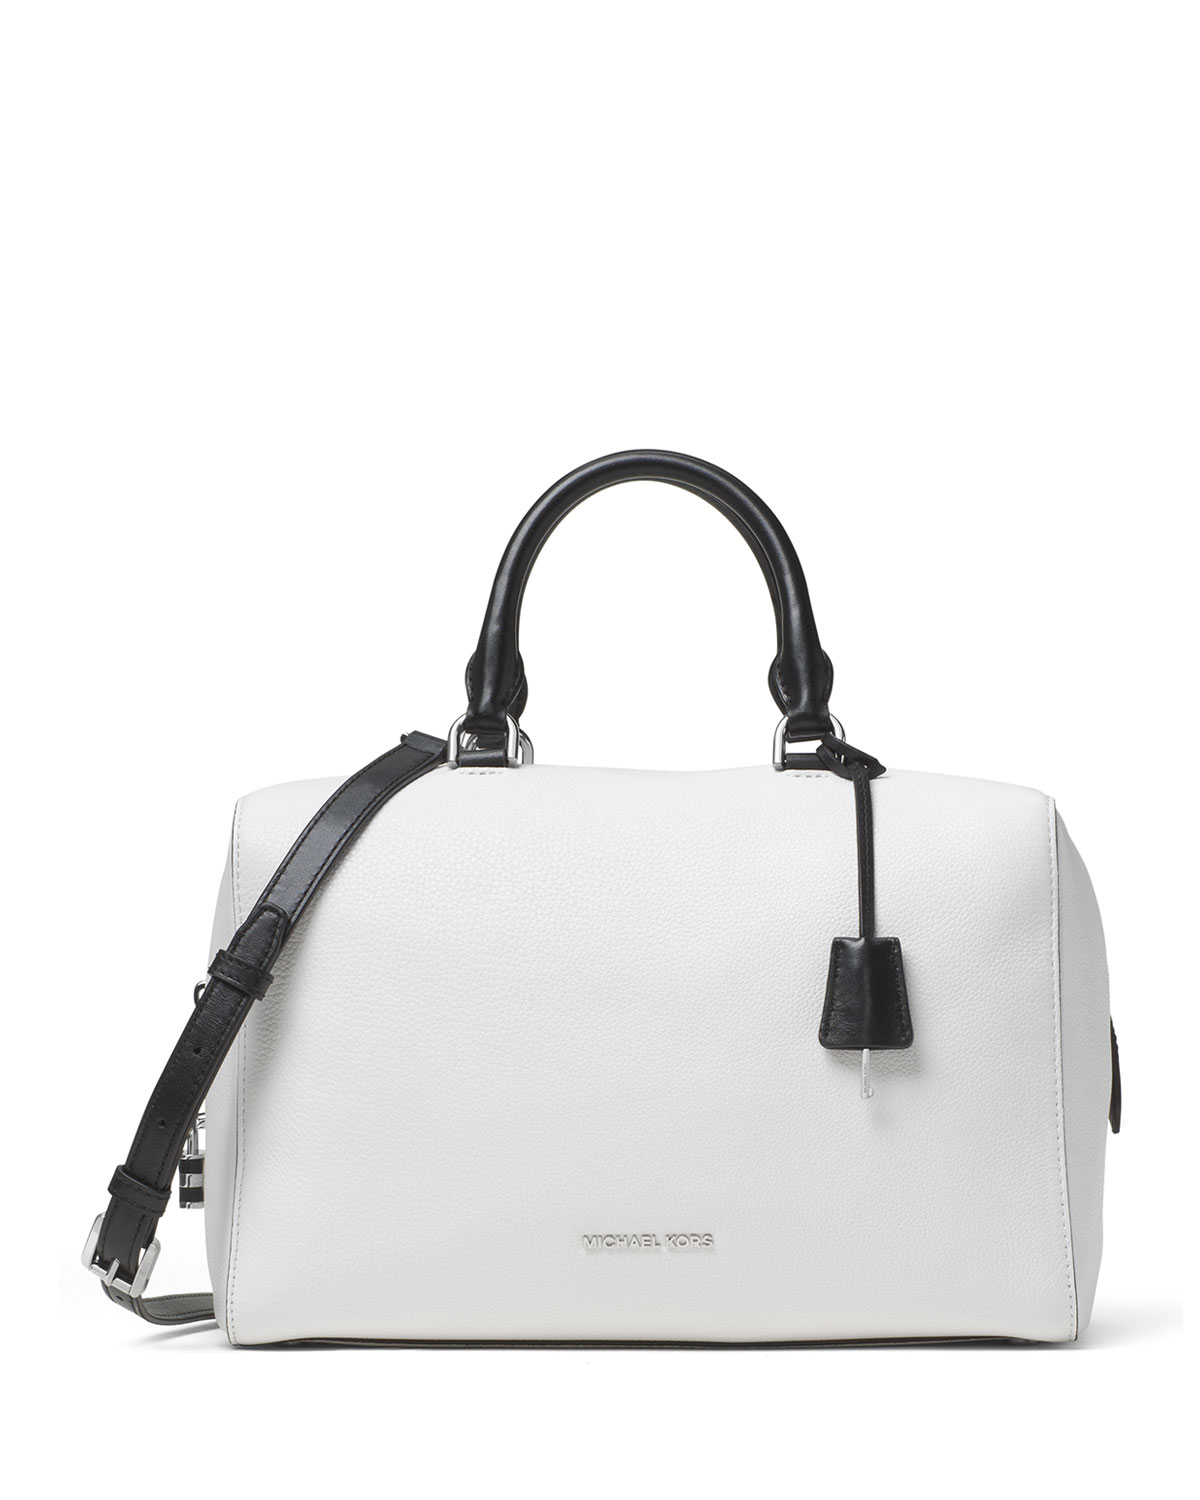 Kirby Large Leather Satchel Bag, White/Black